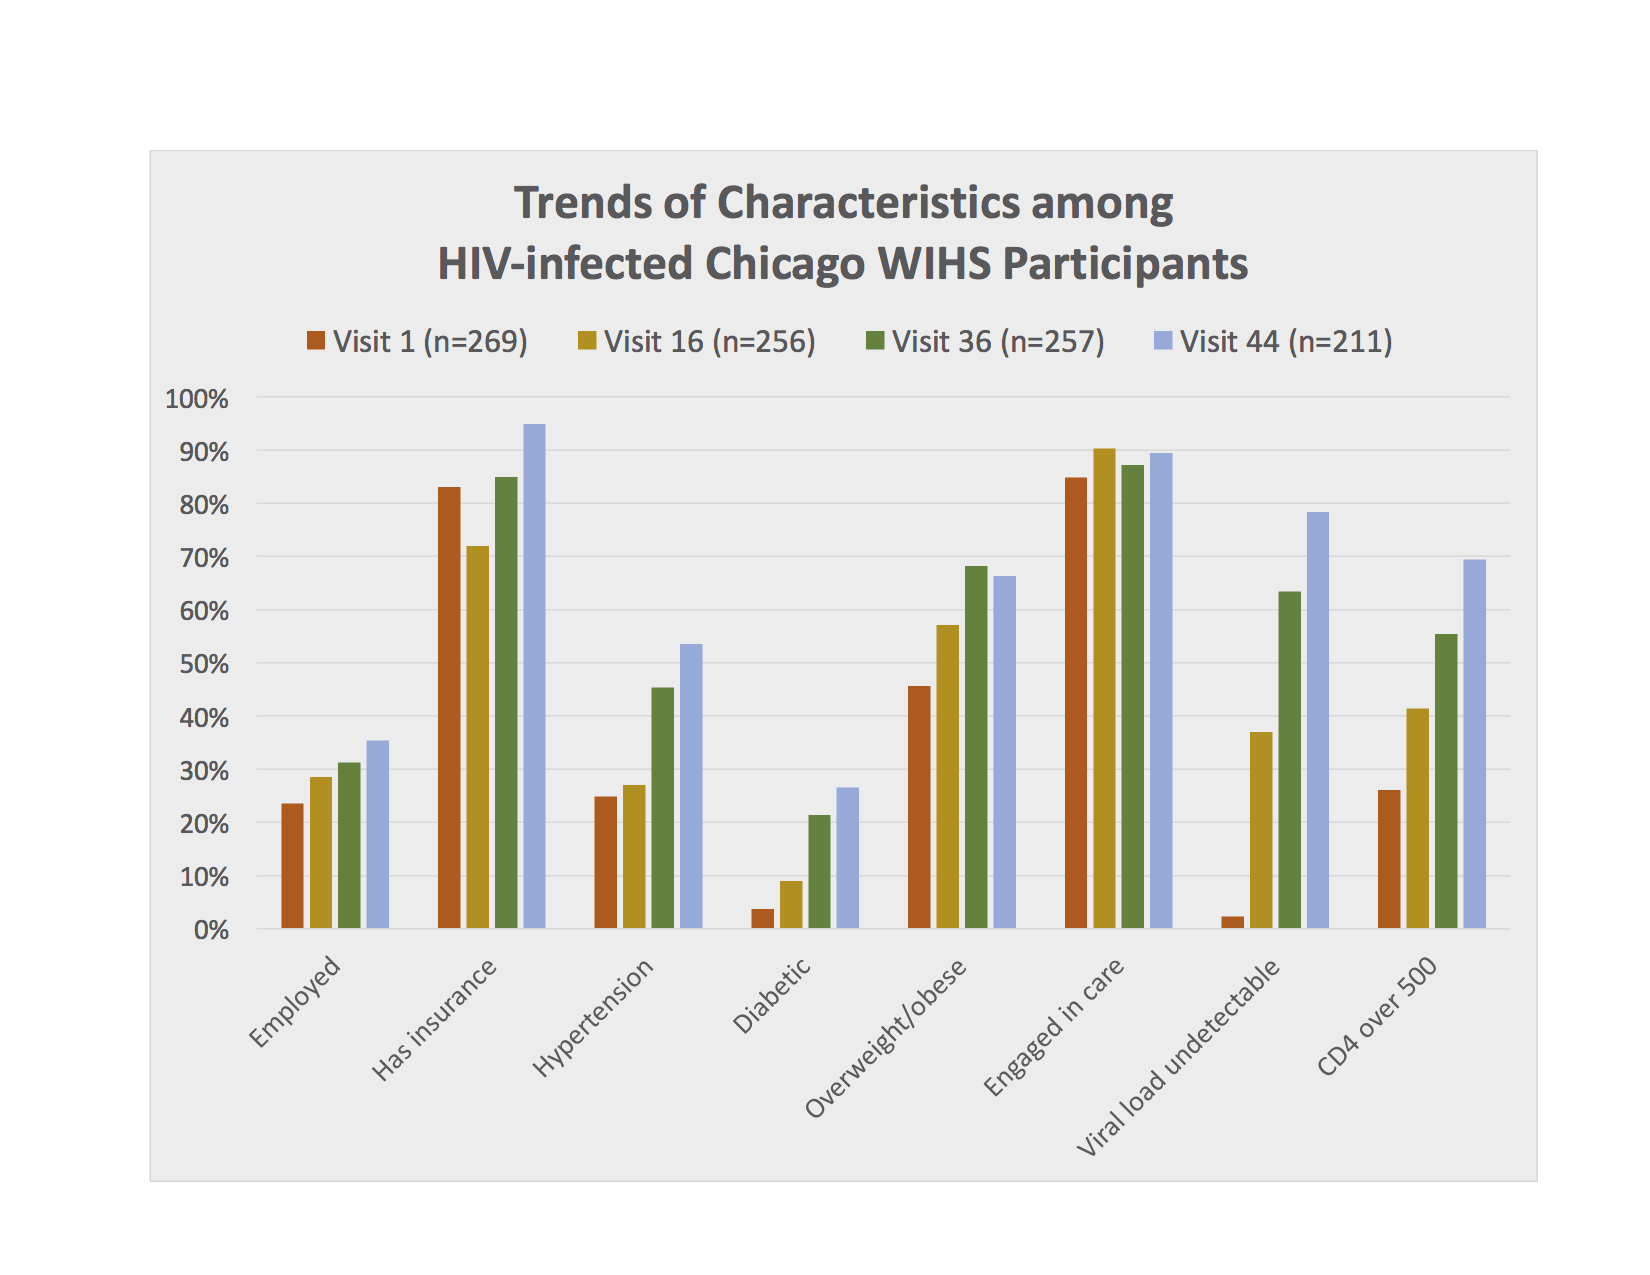 Trends of Characteristics Among HIV-infected Chicago WIHS Participants